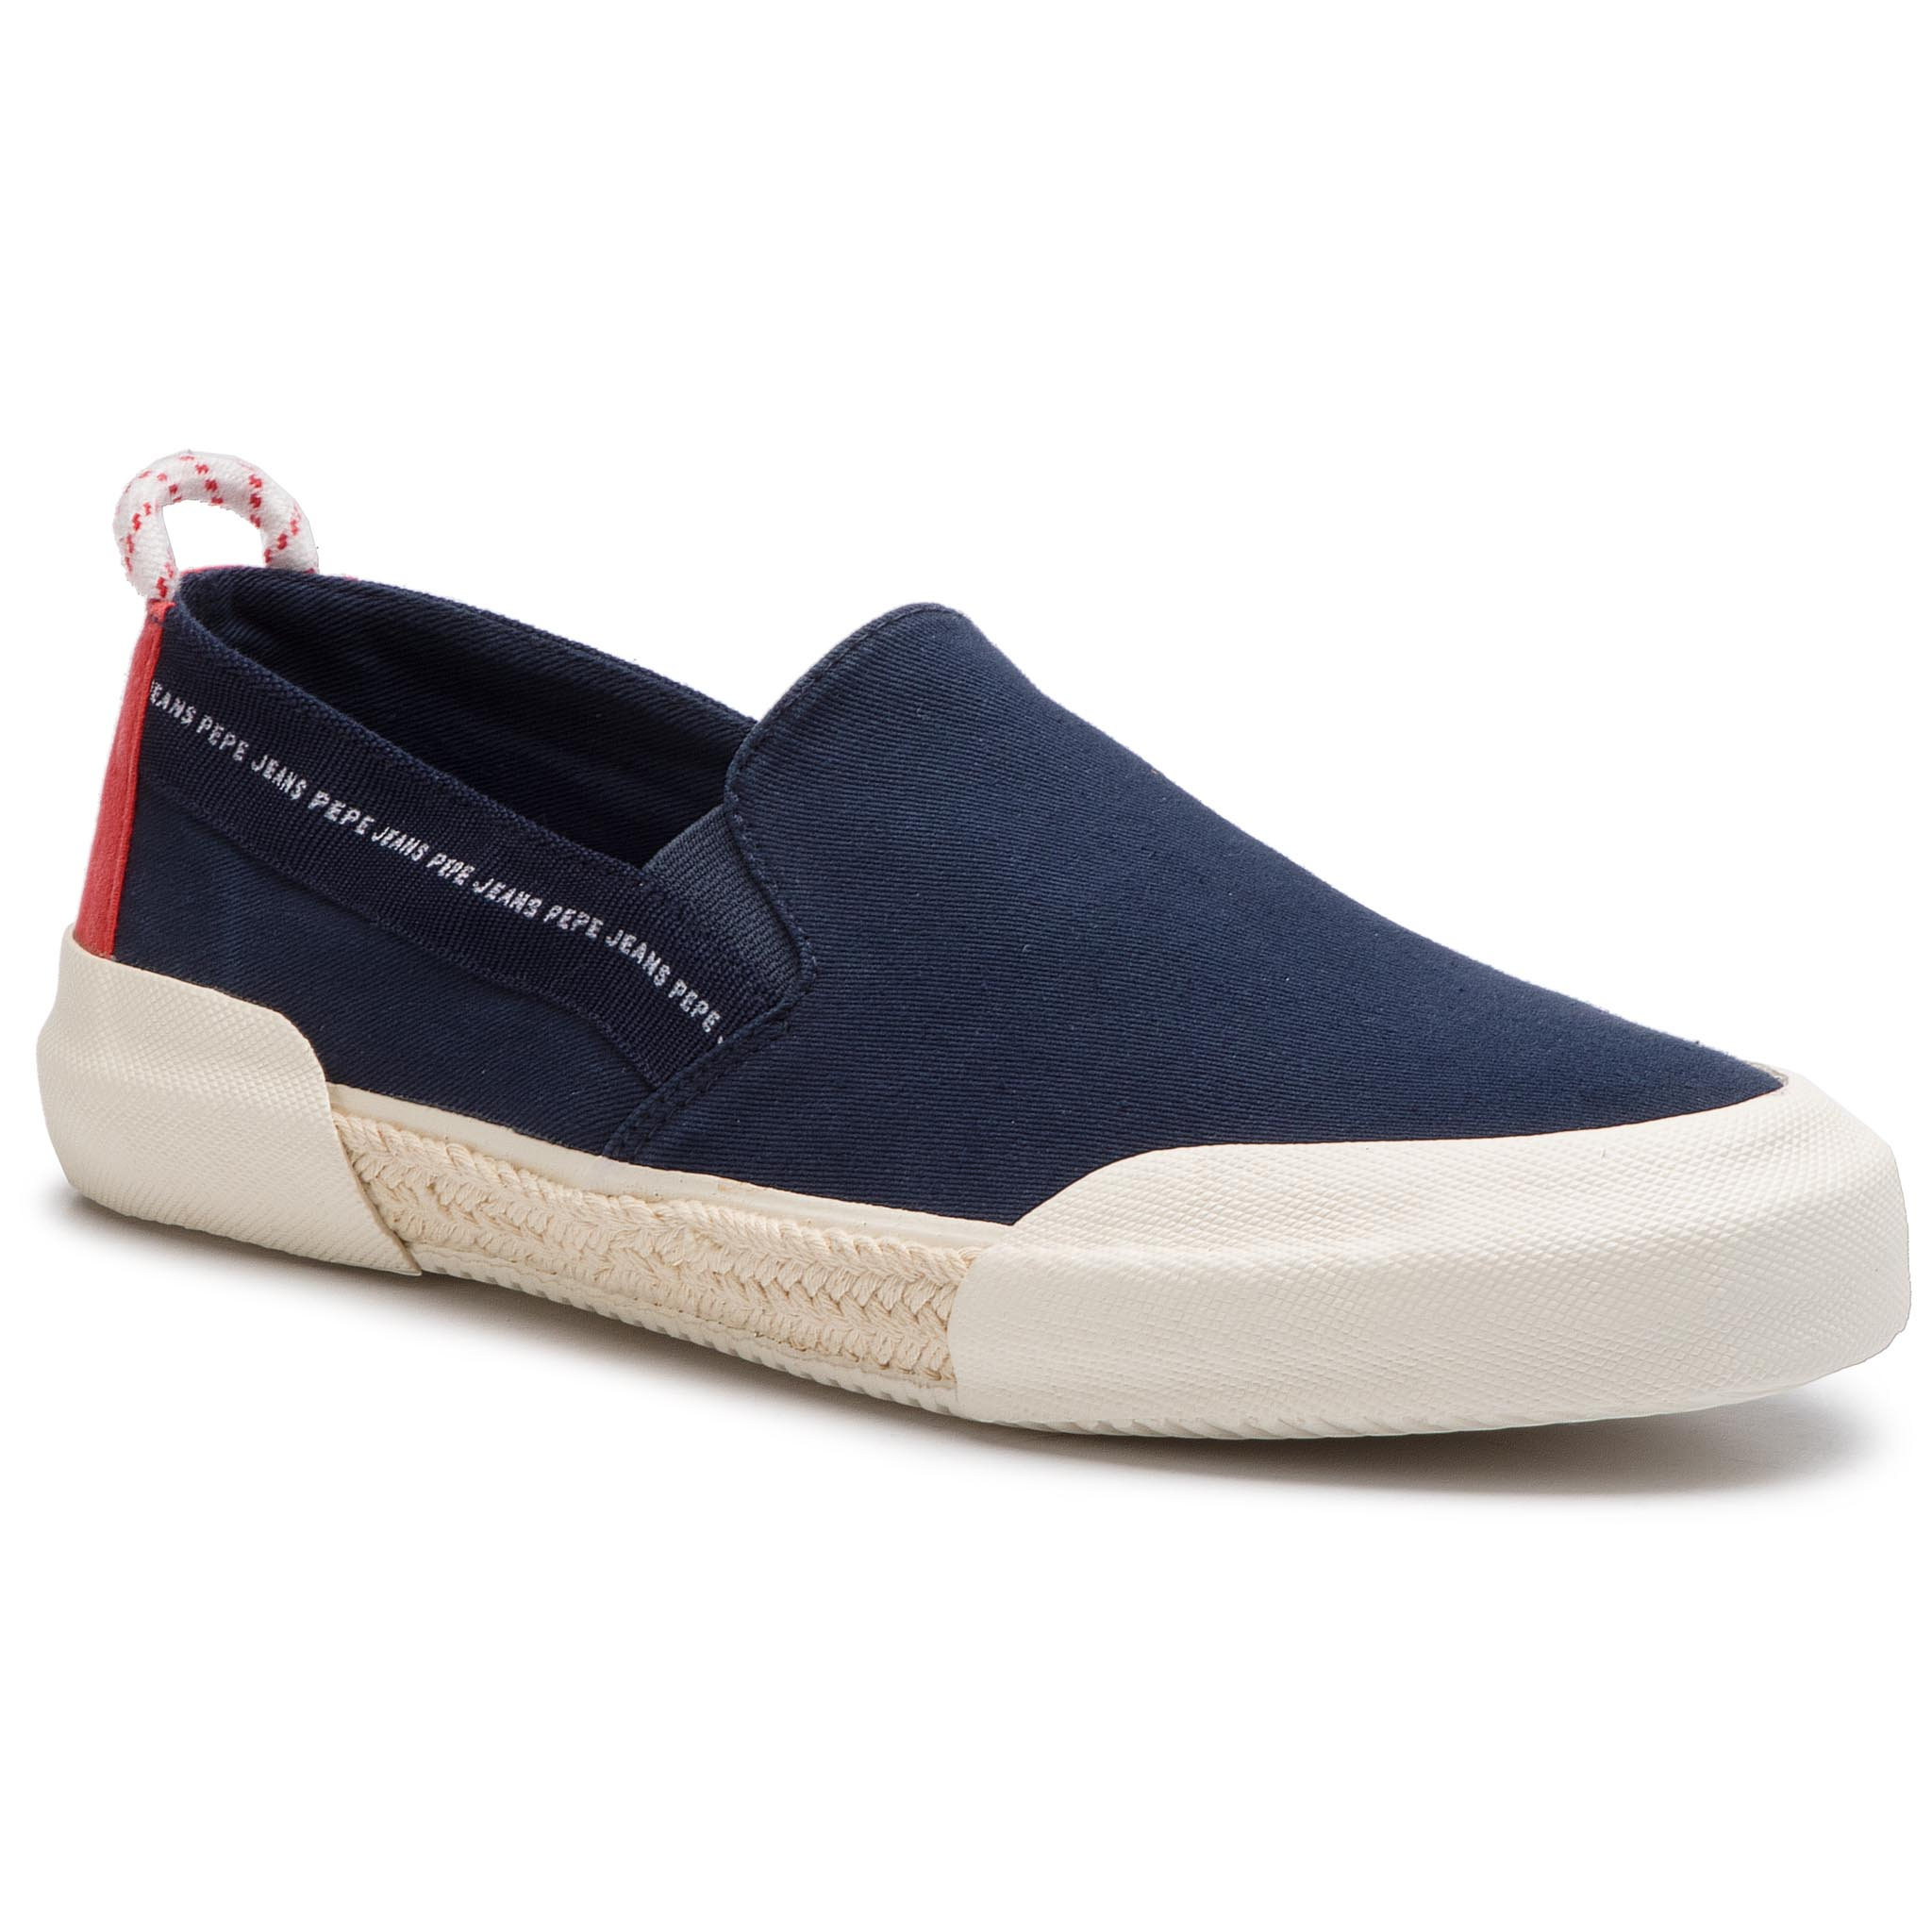 Espadrile PEPE JEANS - Cruise Slip On Men PMS10277 Navy 595